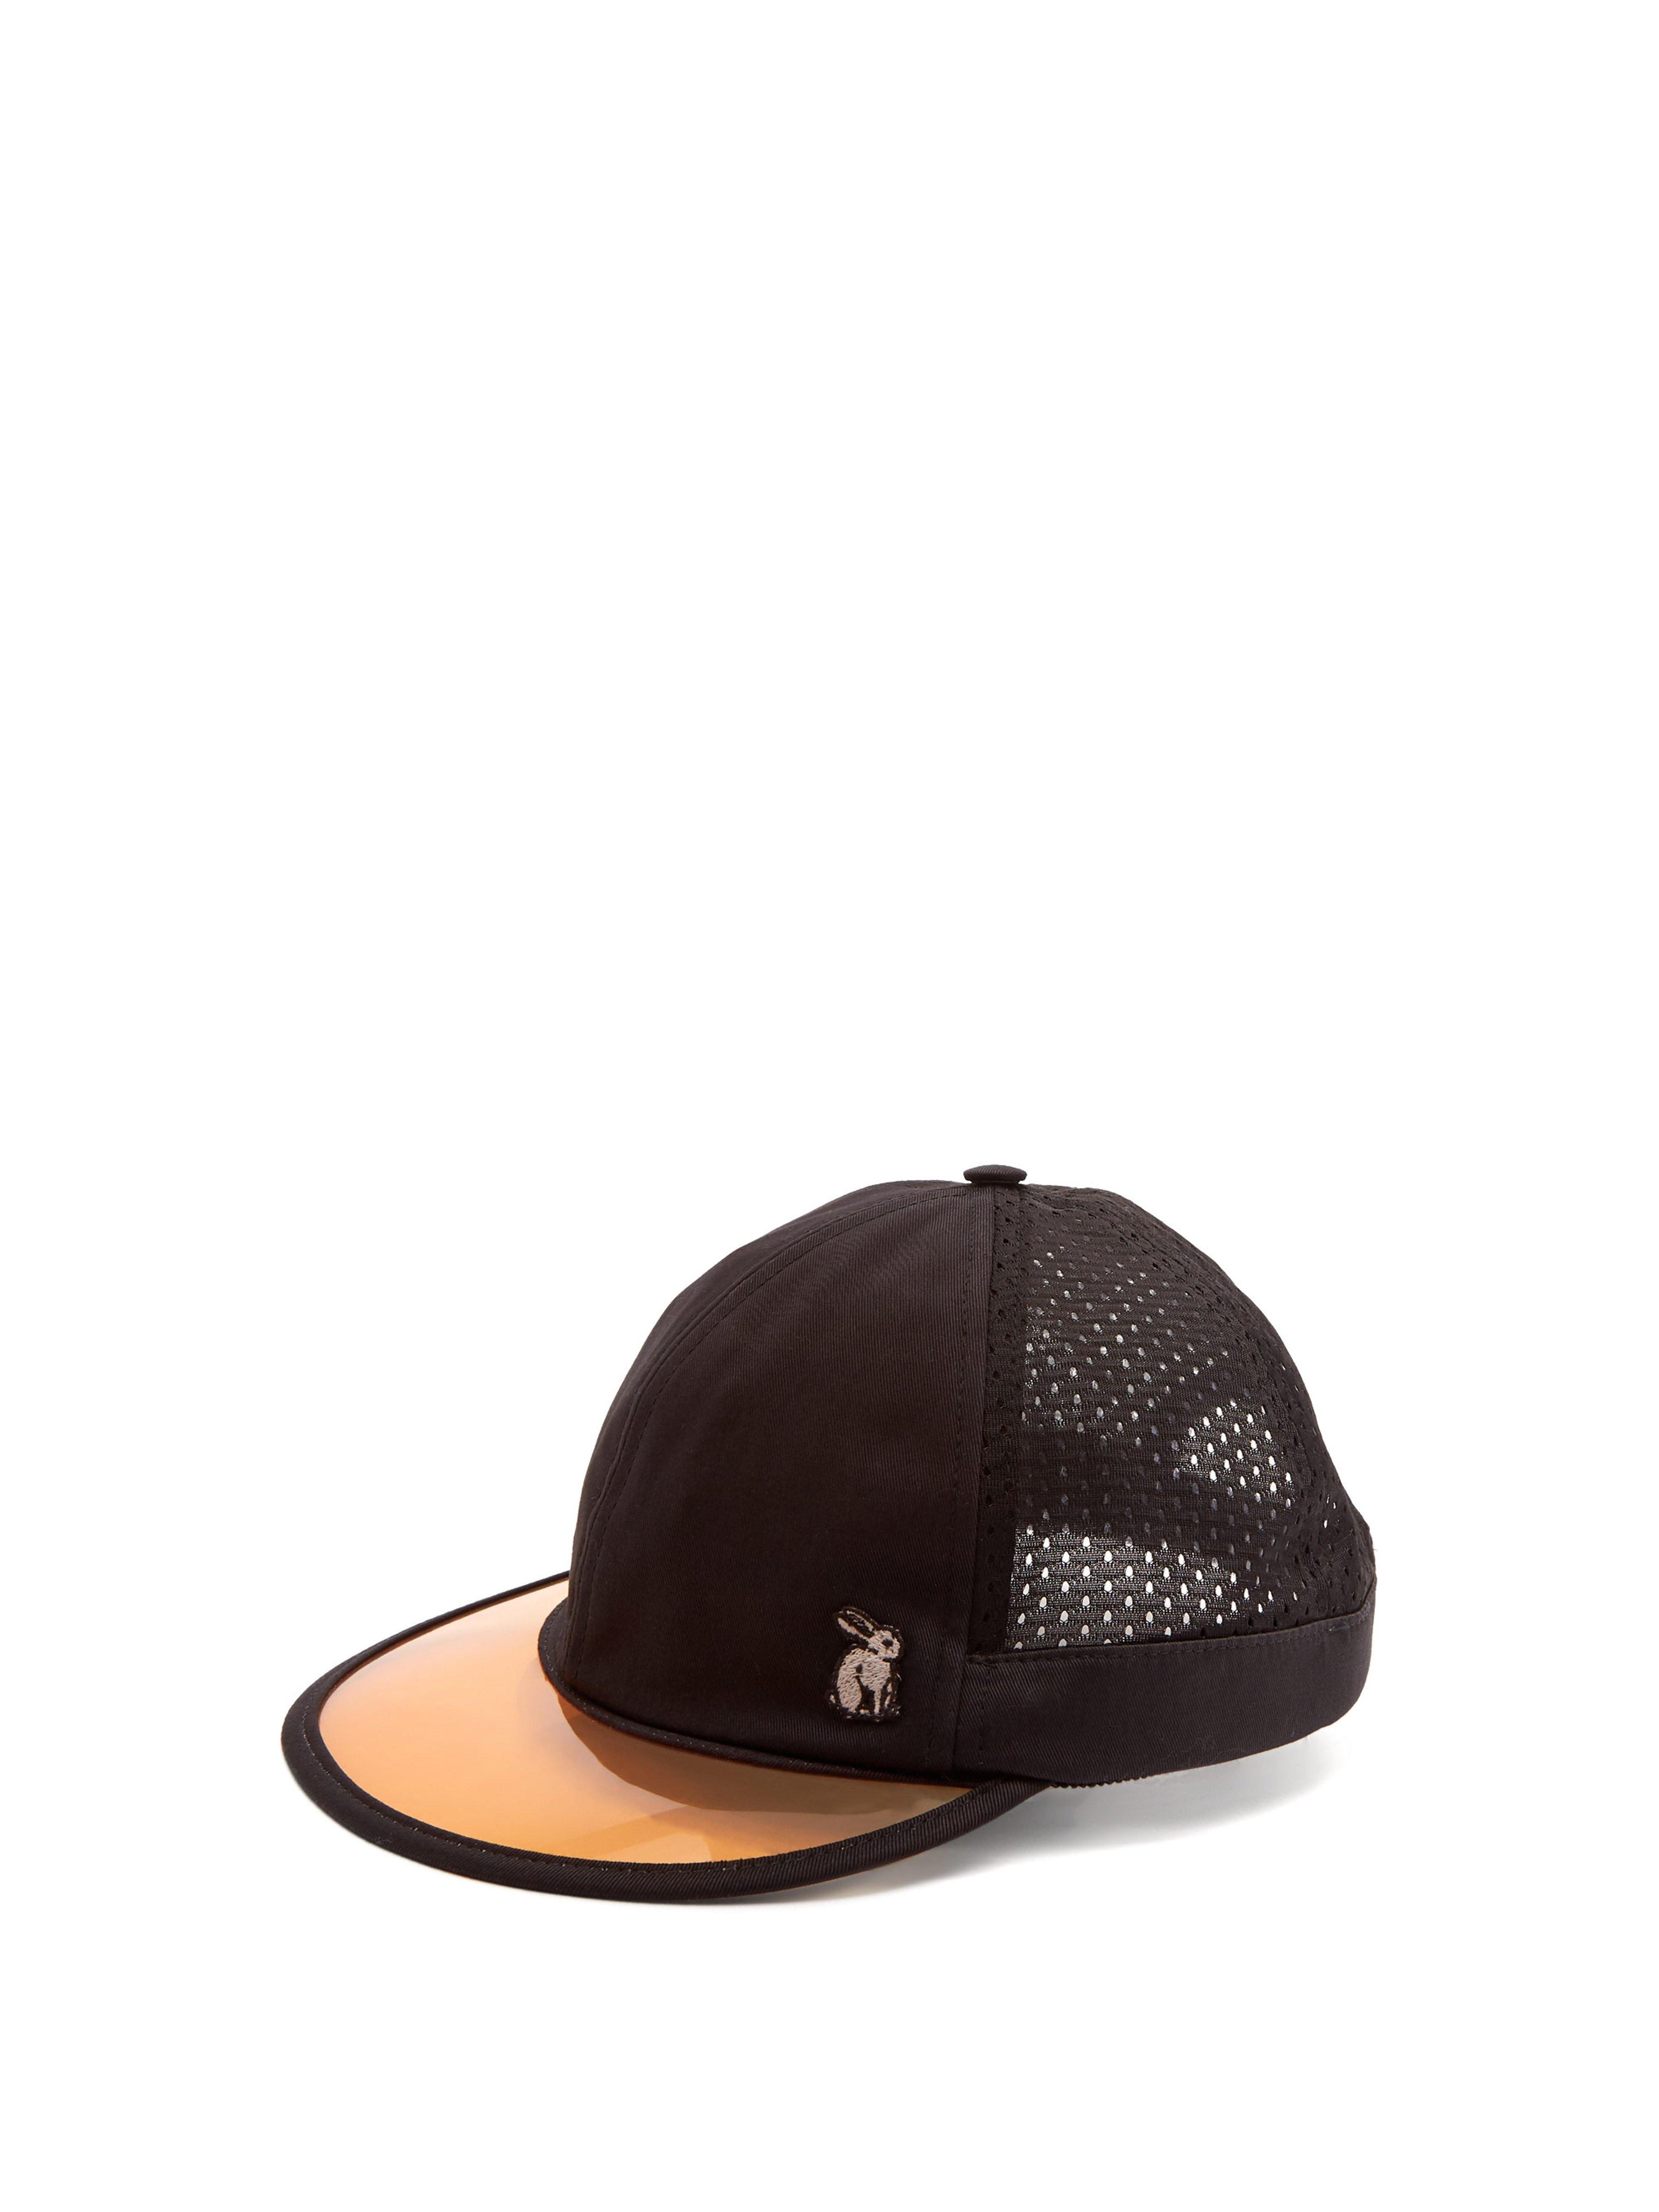 efbe775f042 Gucci Mesh And Cotton Visor Cap in Black for Men - Save 30% - Lyst